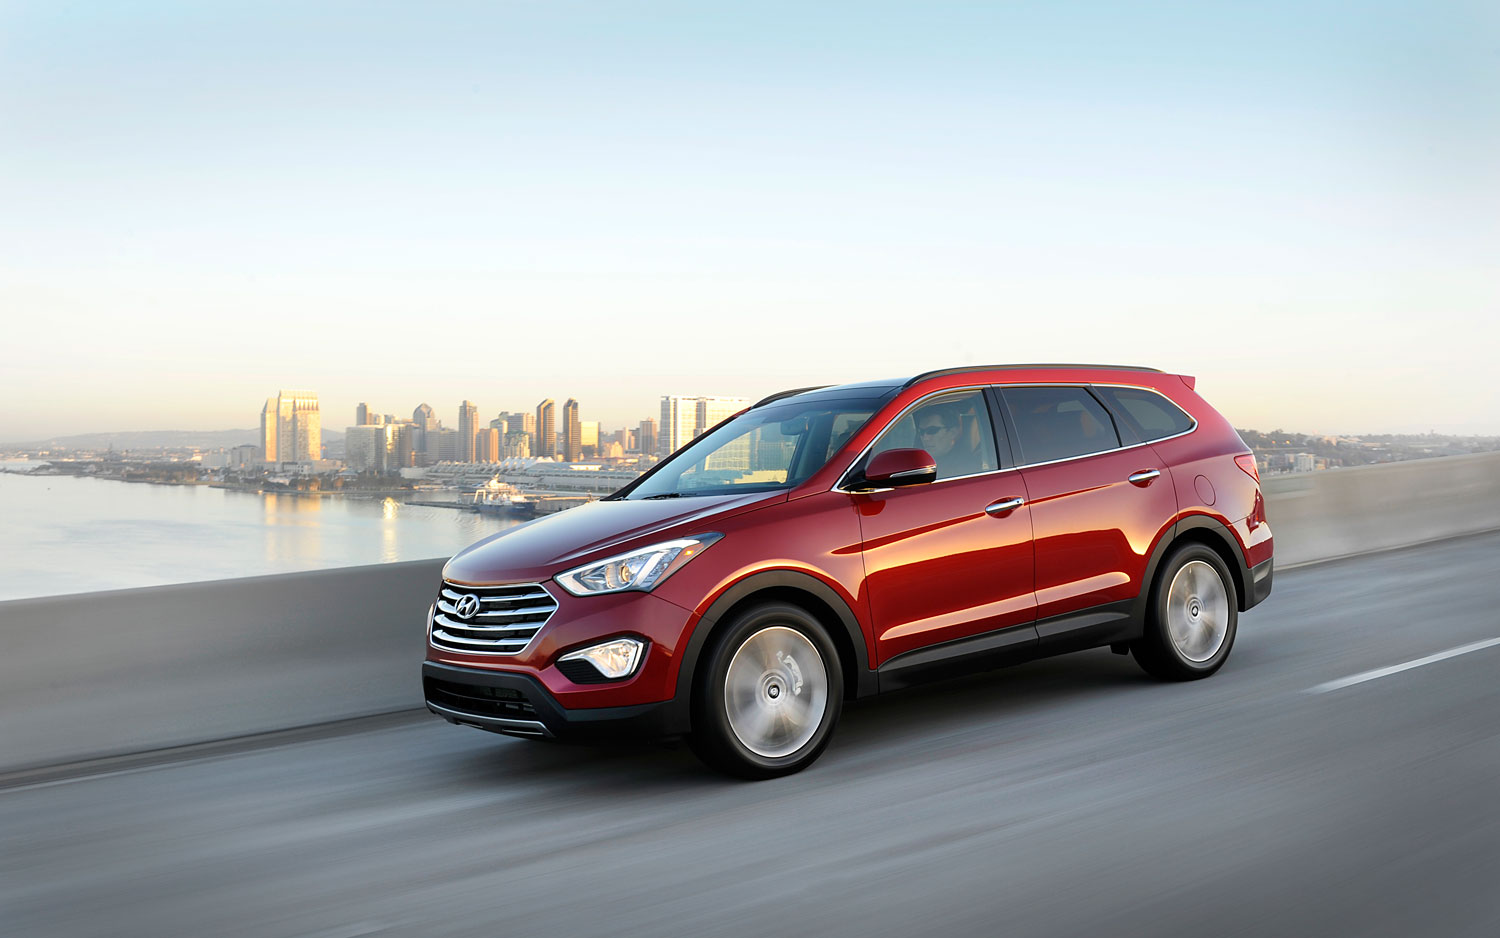 2013 Hyundai Santa Fe Limited AWD First Drive